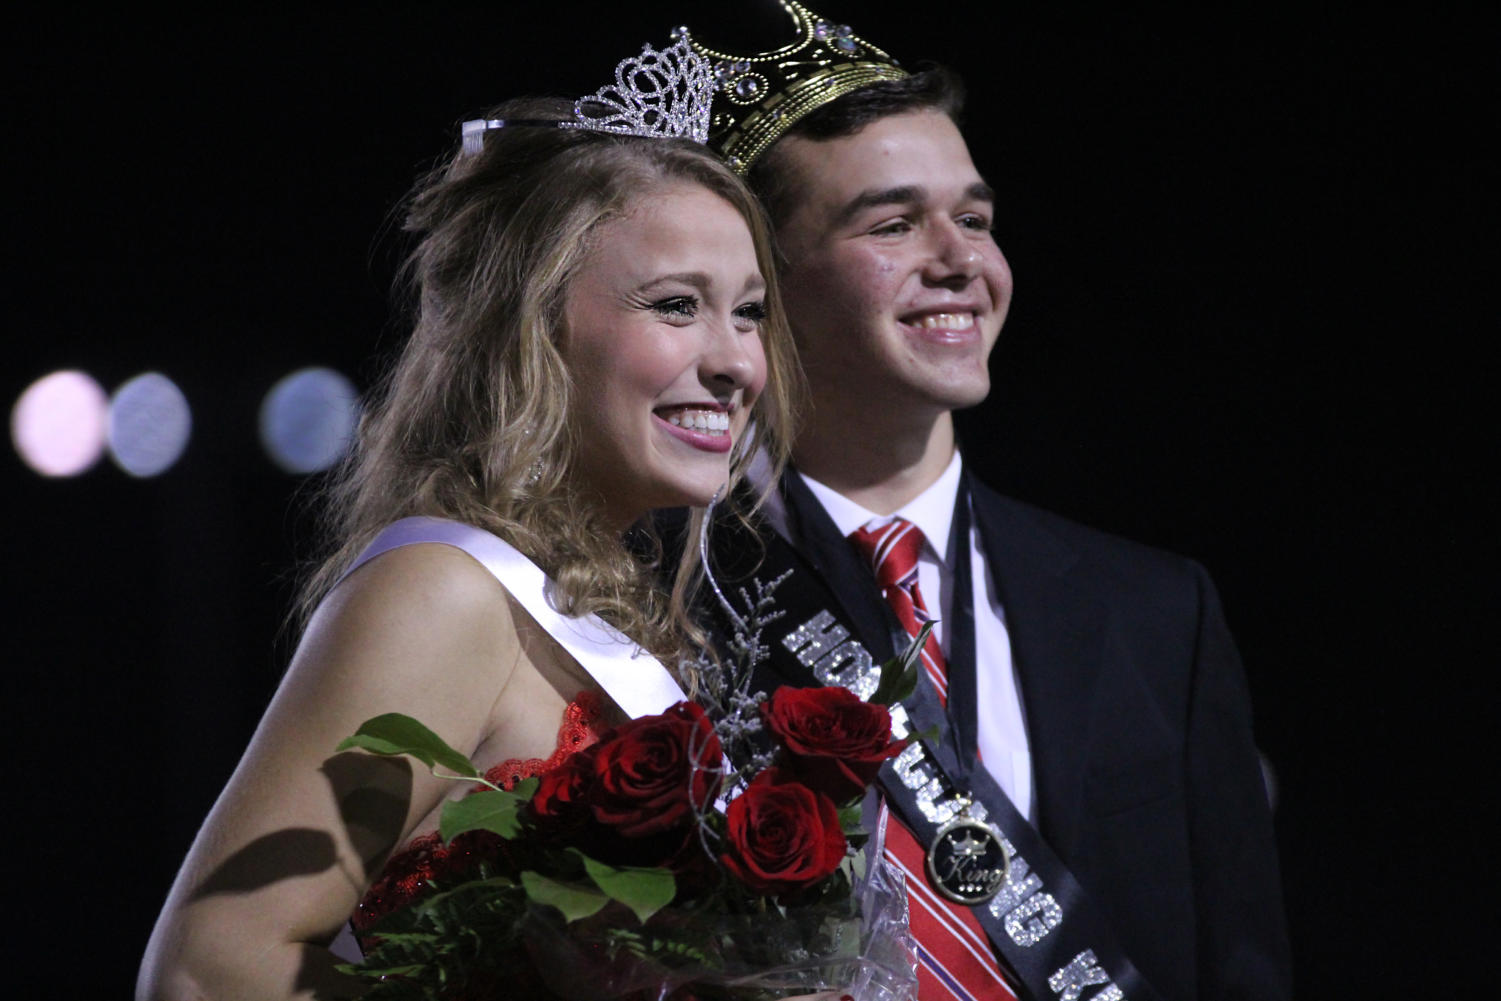 Homecoming+royalty+Sarah+Collins+and+Haydn+Spooner+pose+for+photos.